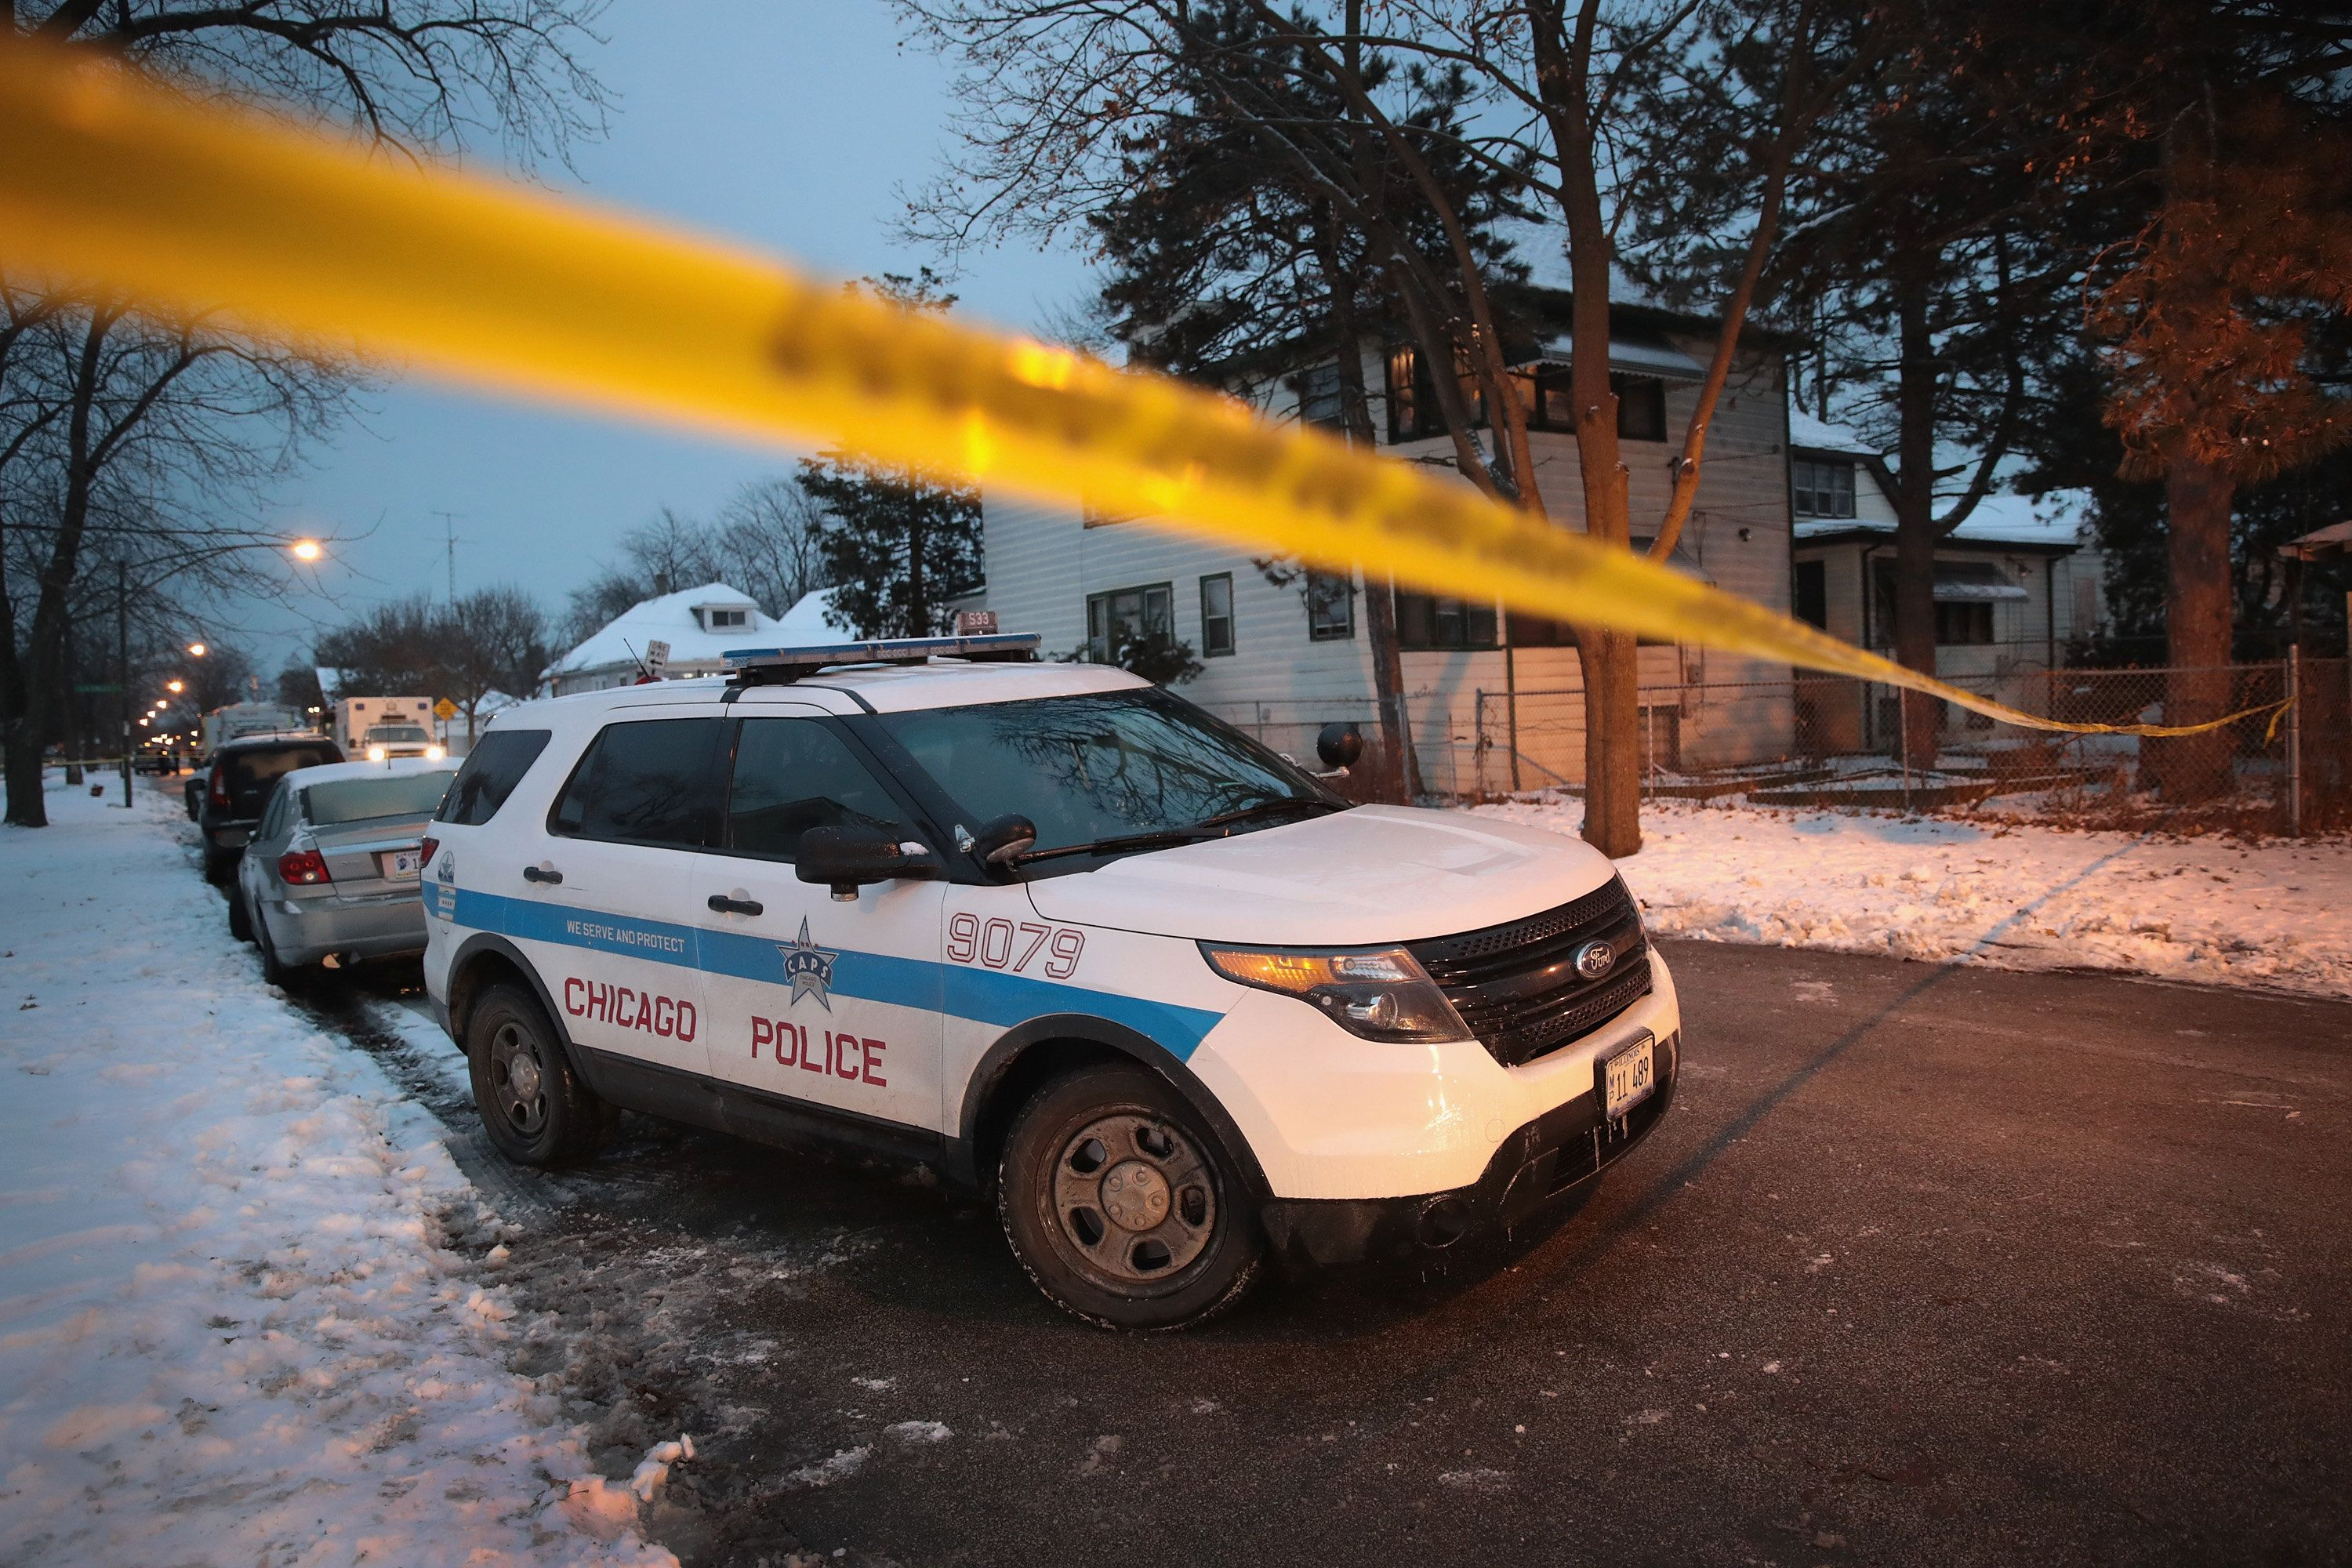 CHICAGO, IL - DECEMBER 17: Police investigate the scene of a quadruple homicide on the city's Southside on December 17, 2016 in Chicago, Illinois. Three people were found shot to death inside a home in the Fernwood neighborhood, another 2 were found shot outside the home, one of those deceased. Chicago has had more than 750 homicides in 2016. (Photo by Scott Olson/Getty Images)